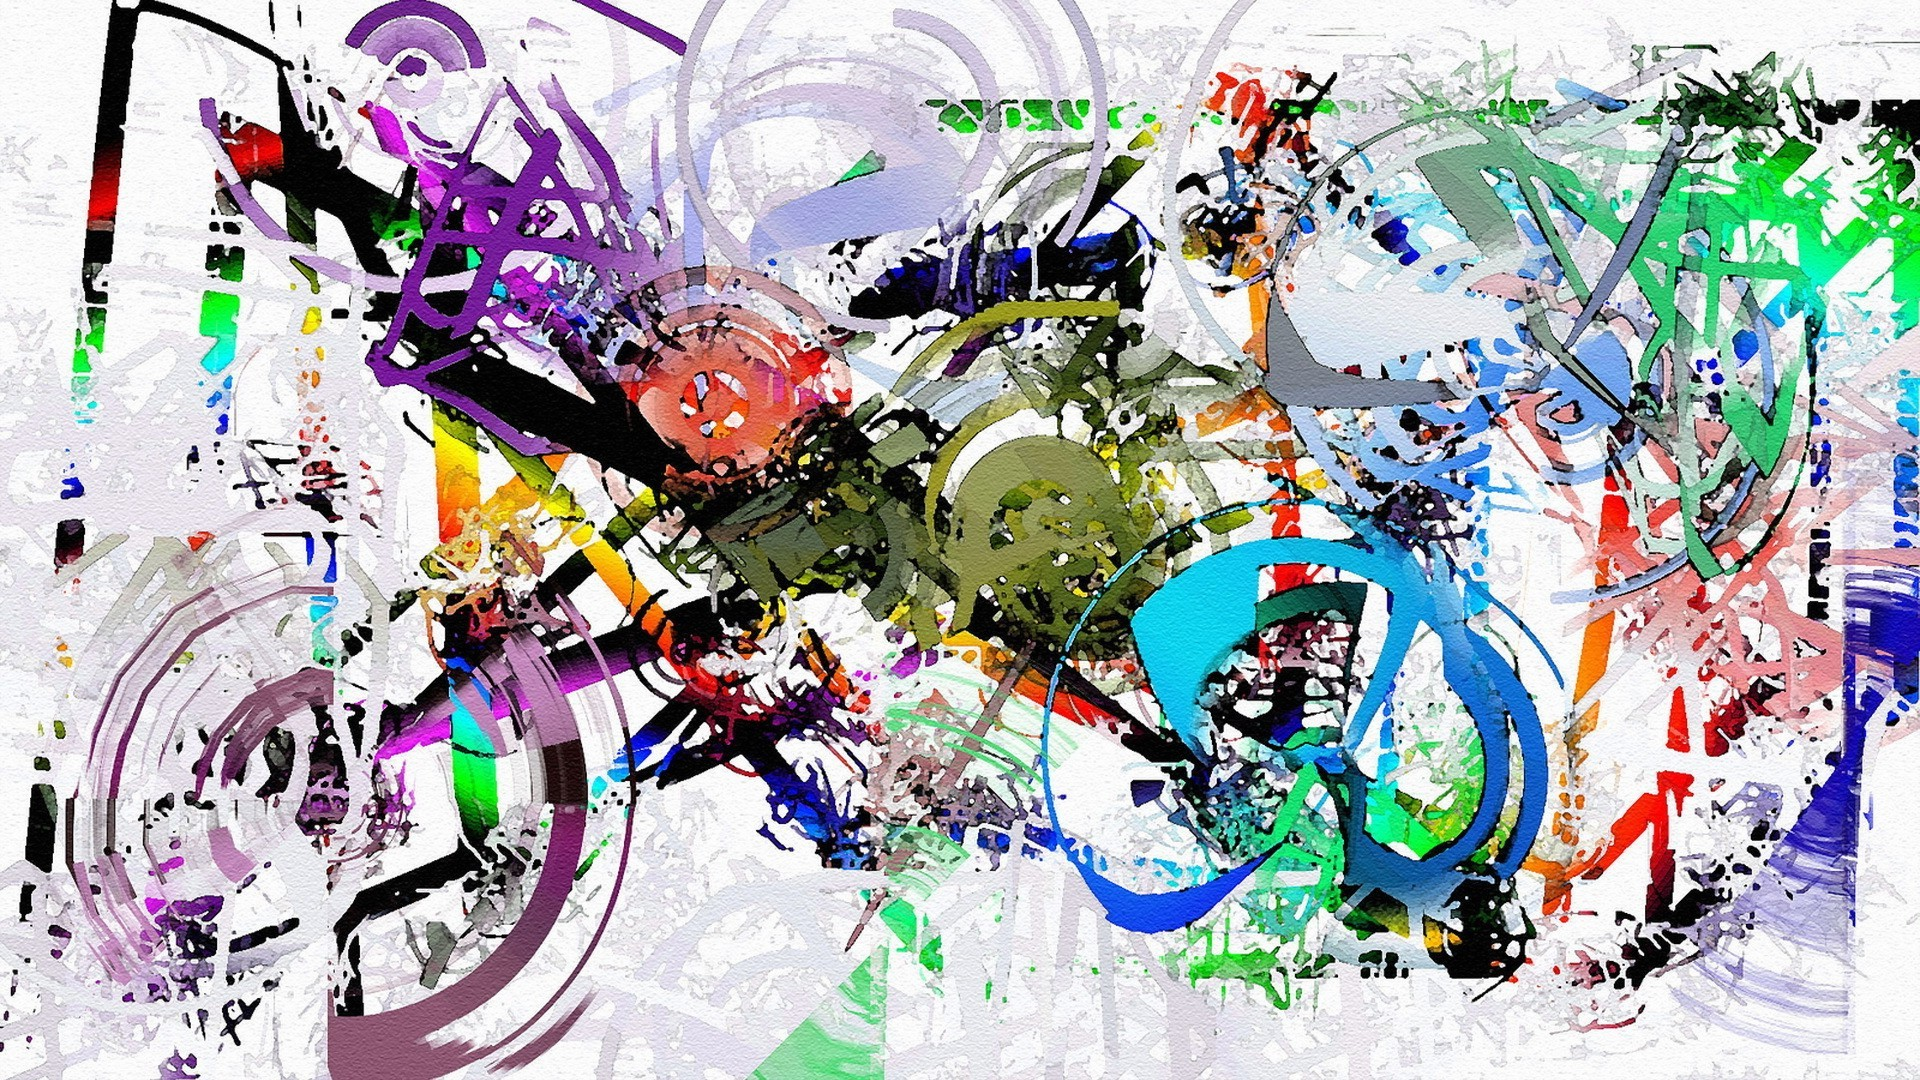 Modern Girl Wallpaper Free Download Painting Artwork Abstract Paint Splatter Colorful